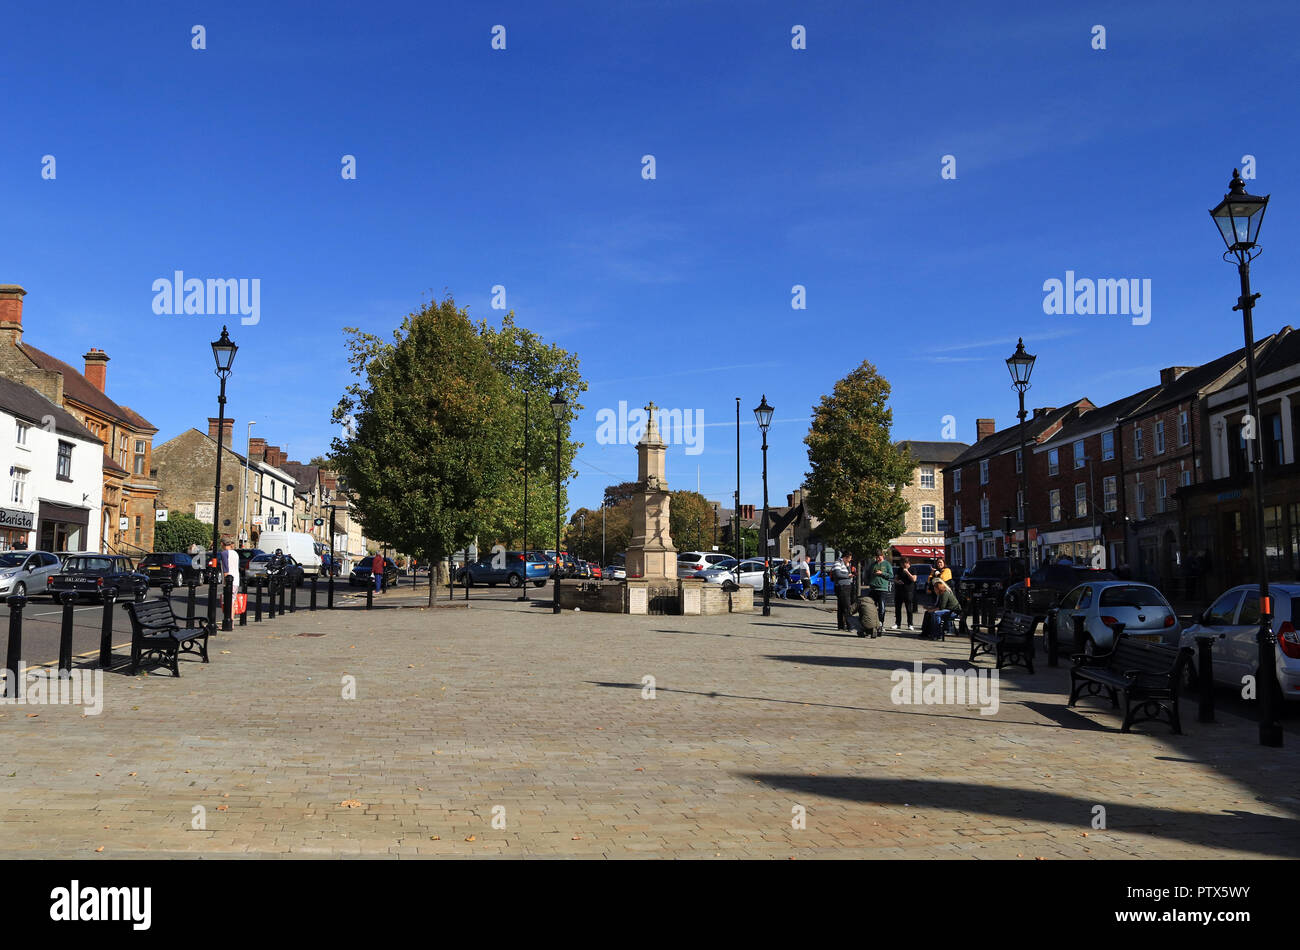 On a beautiful autumn morning the sun shines down on the Market Street in Brackley in Northamptonshire, as people are out and about. Stock Photo